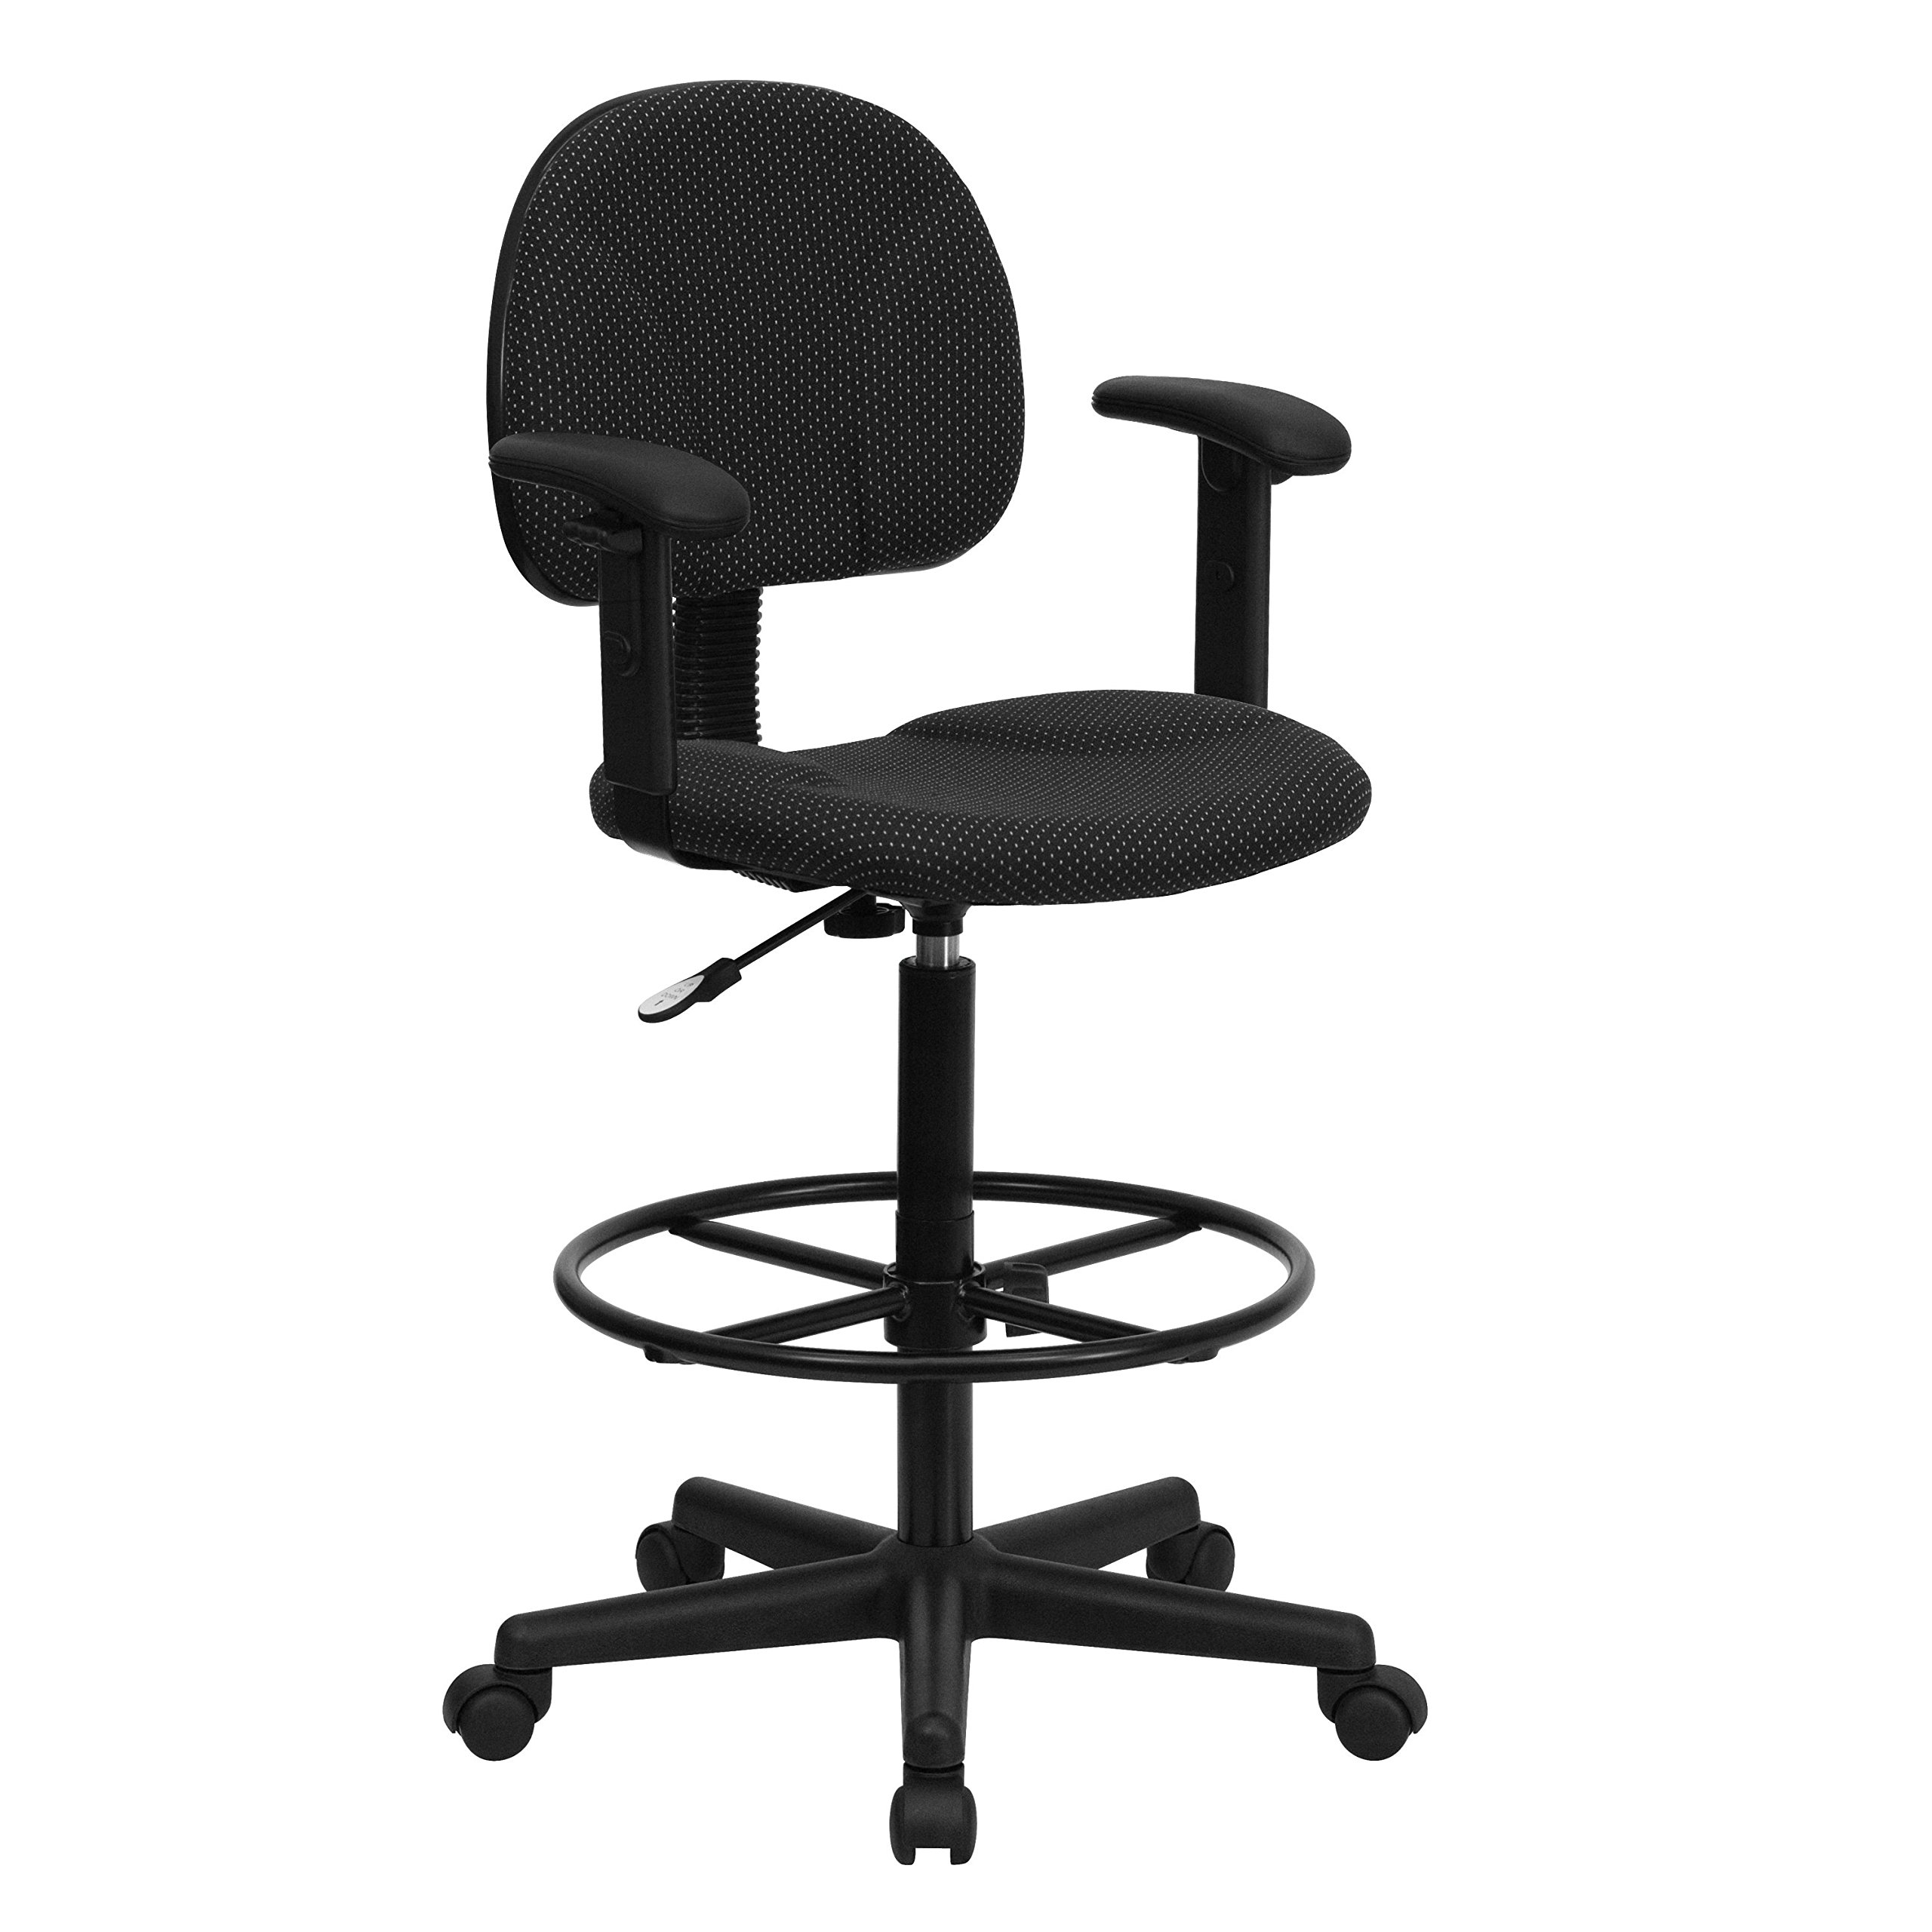 Flash Furniture Black Patterned Fabric Drafting Chair with Adjustable Arms (Cylinders: 22.5''-27''H or 26''-30.5''H)